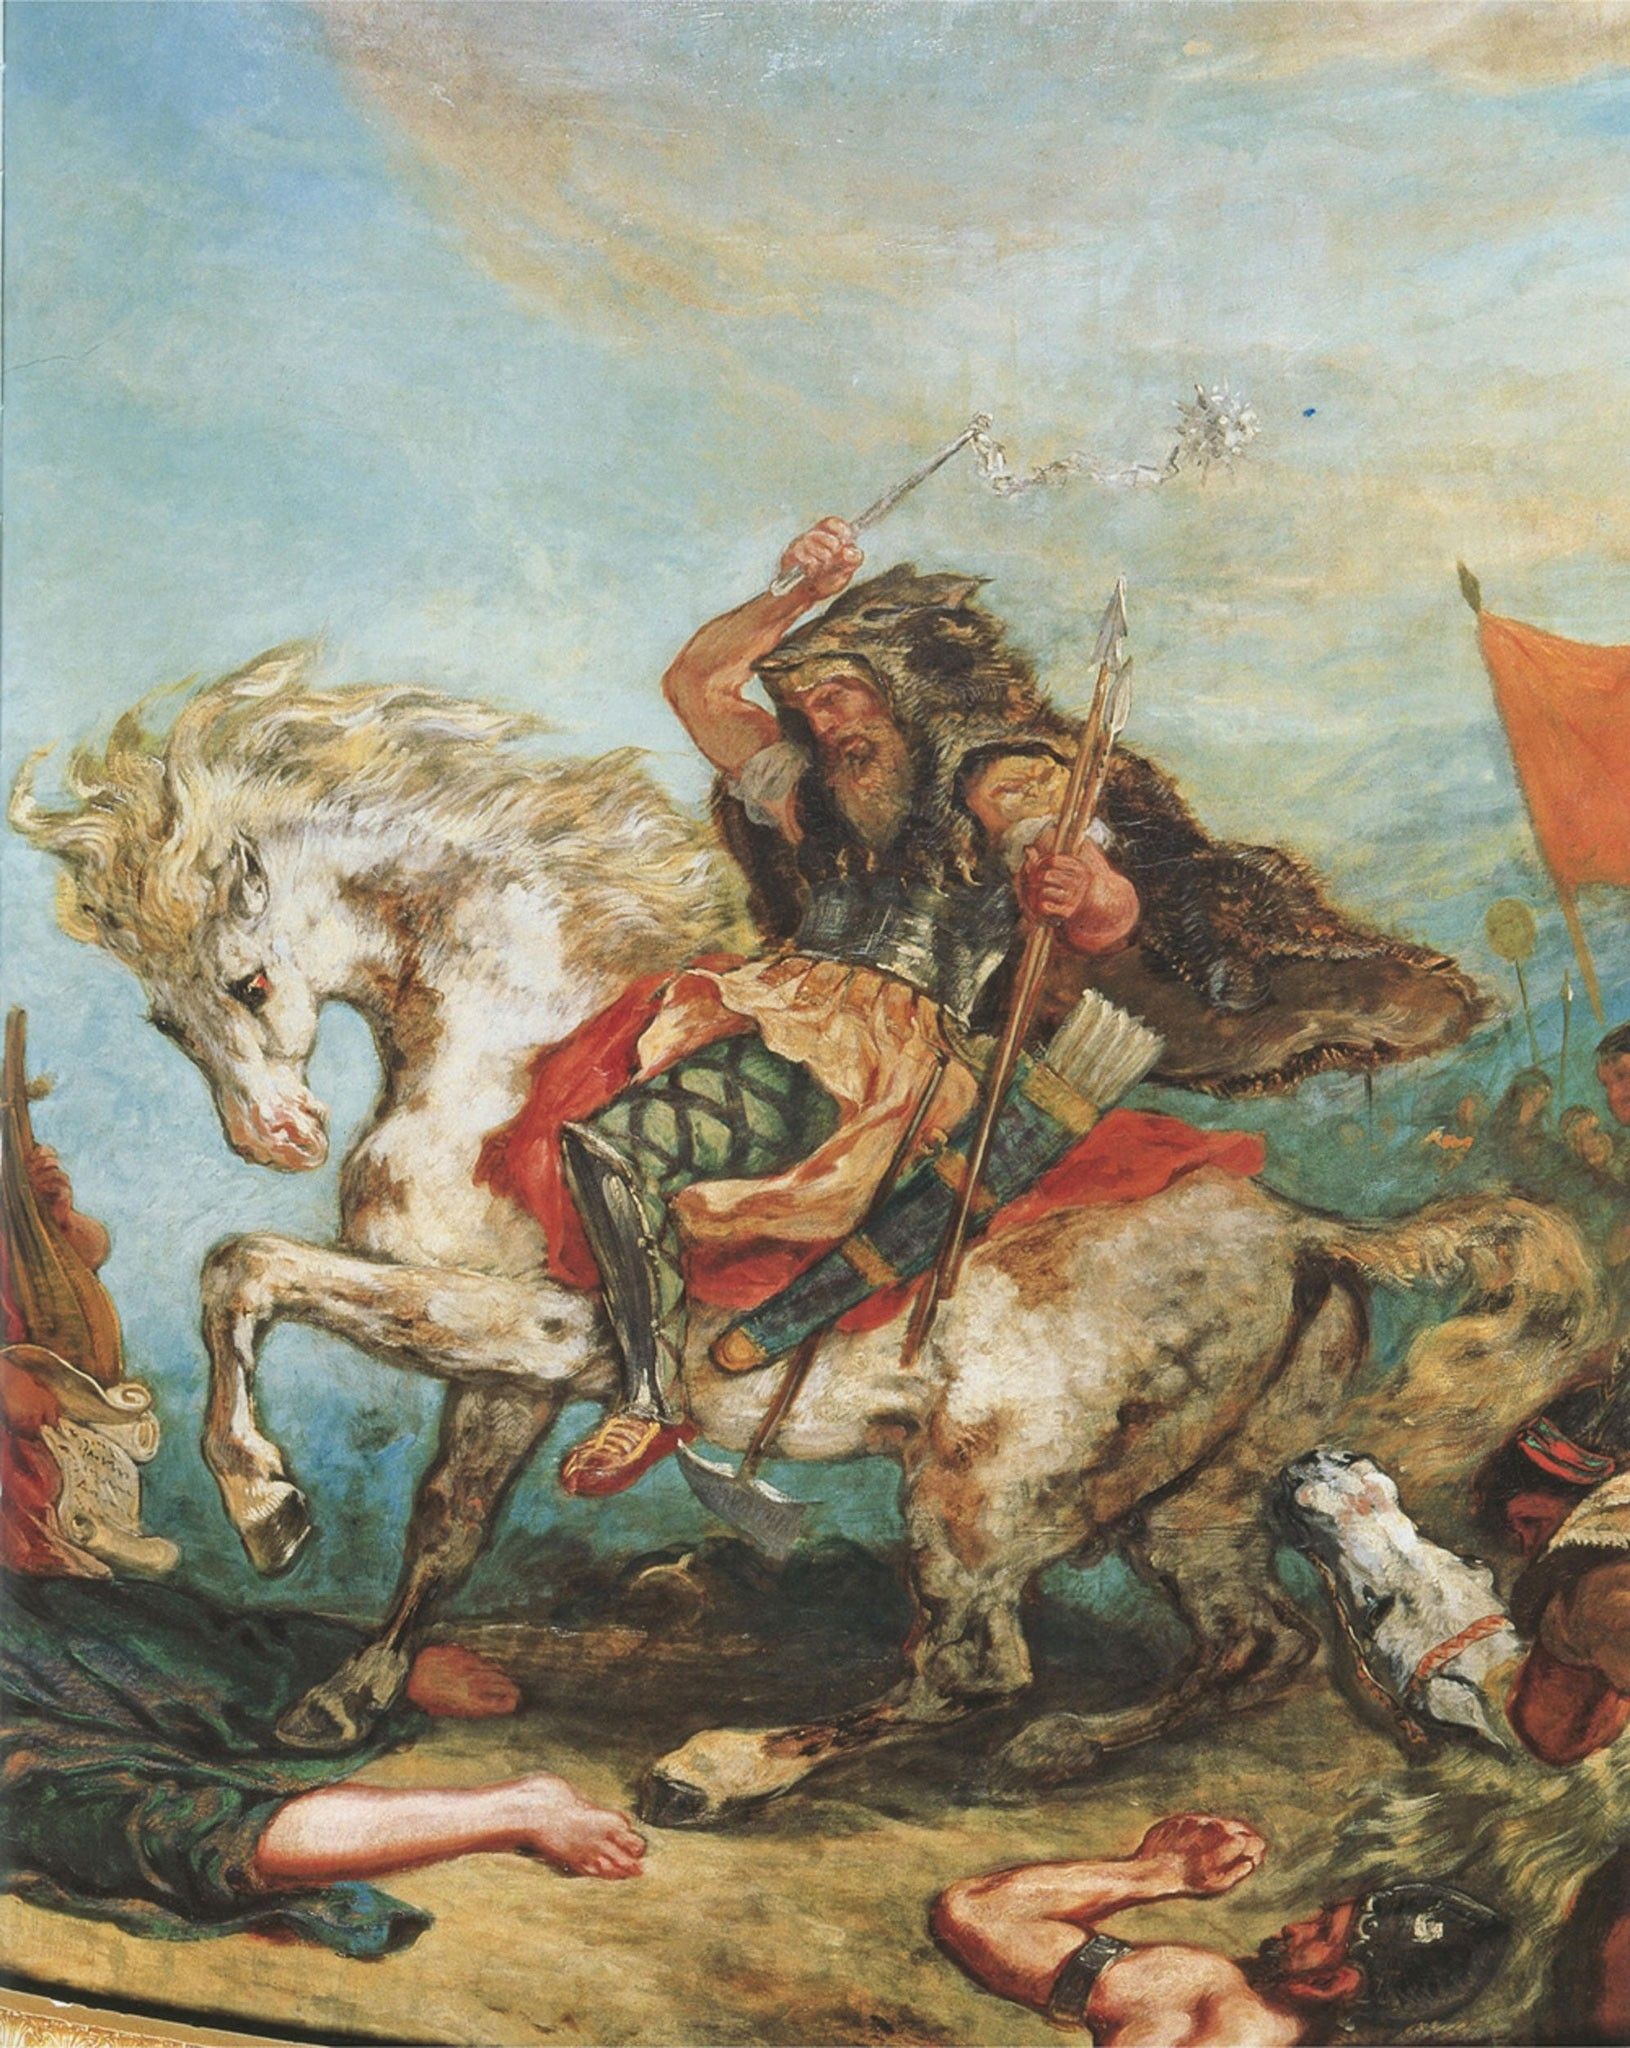 Who were the ruthless warriors behind Attila the Hun? | National Geographic